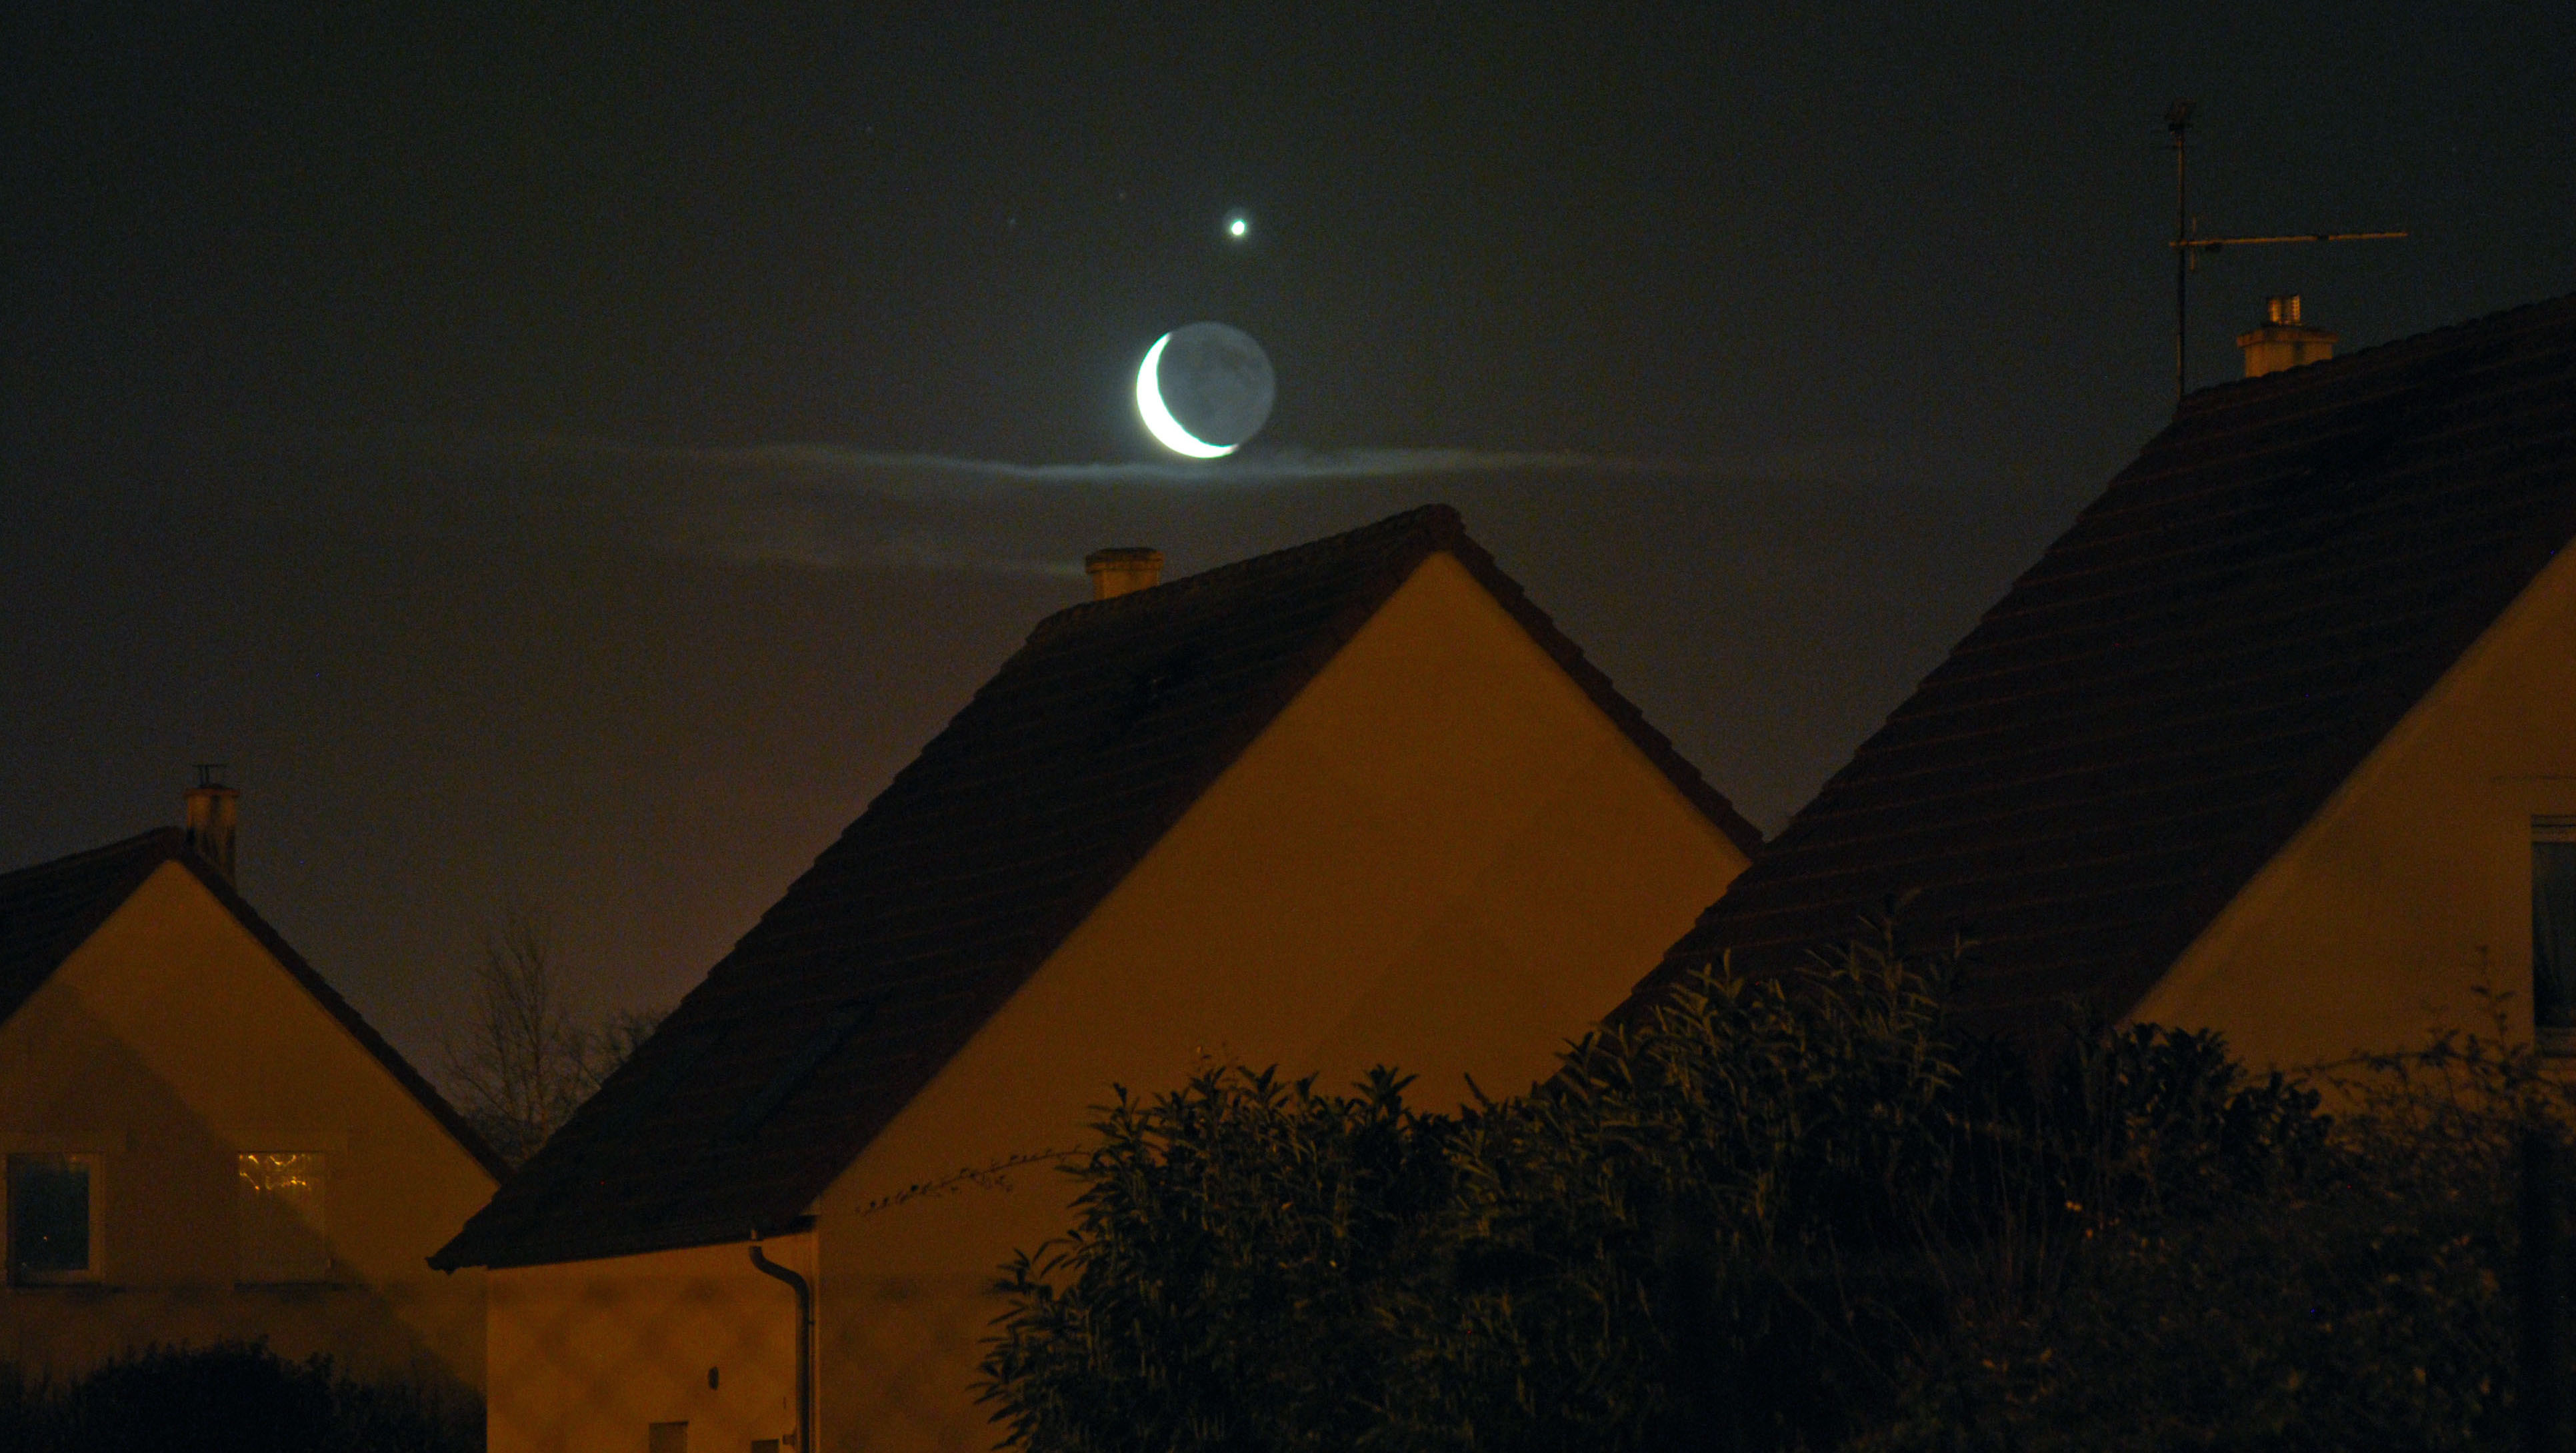 Conjunction of the Crescent Moon and Crescent Venus - EPOD